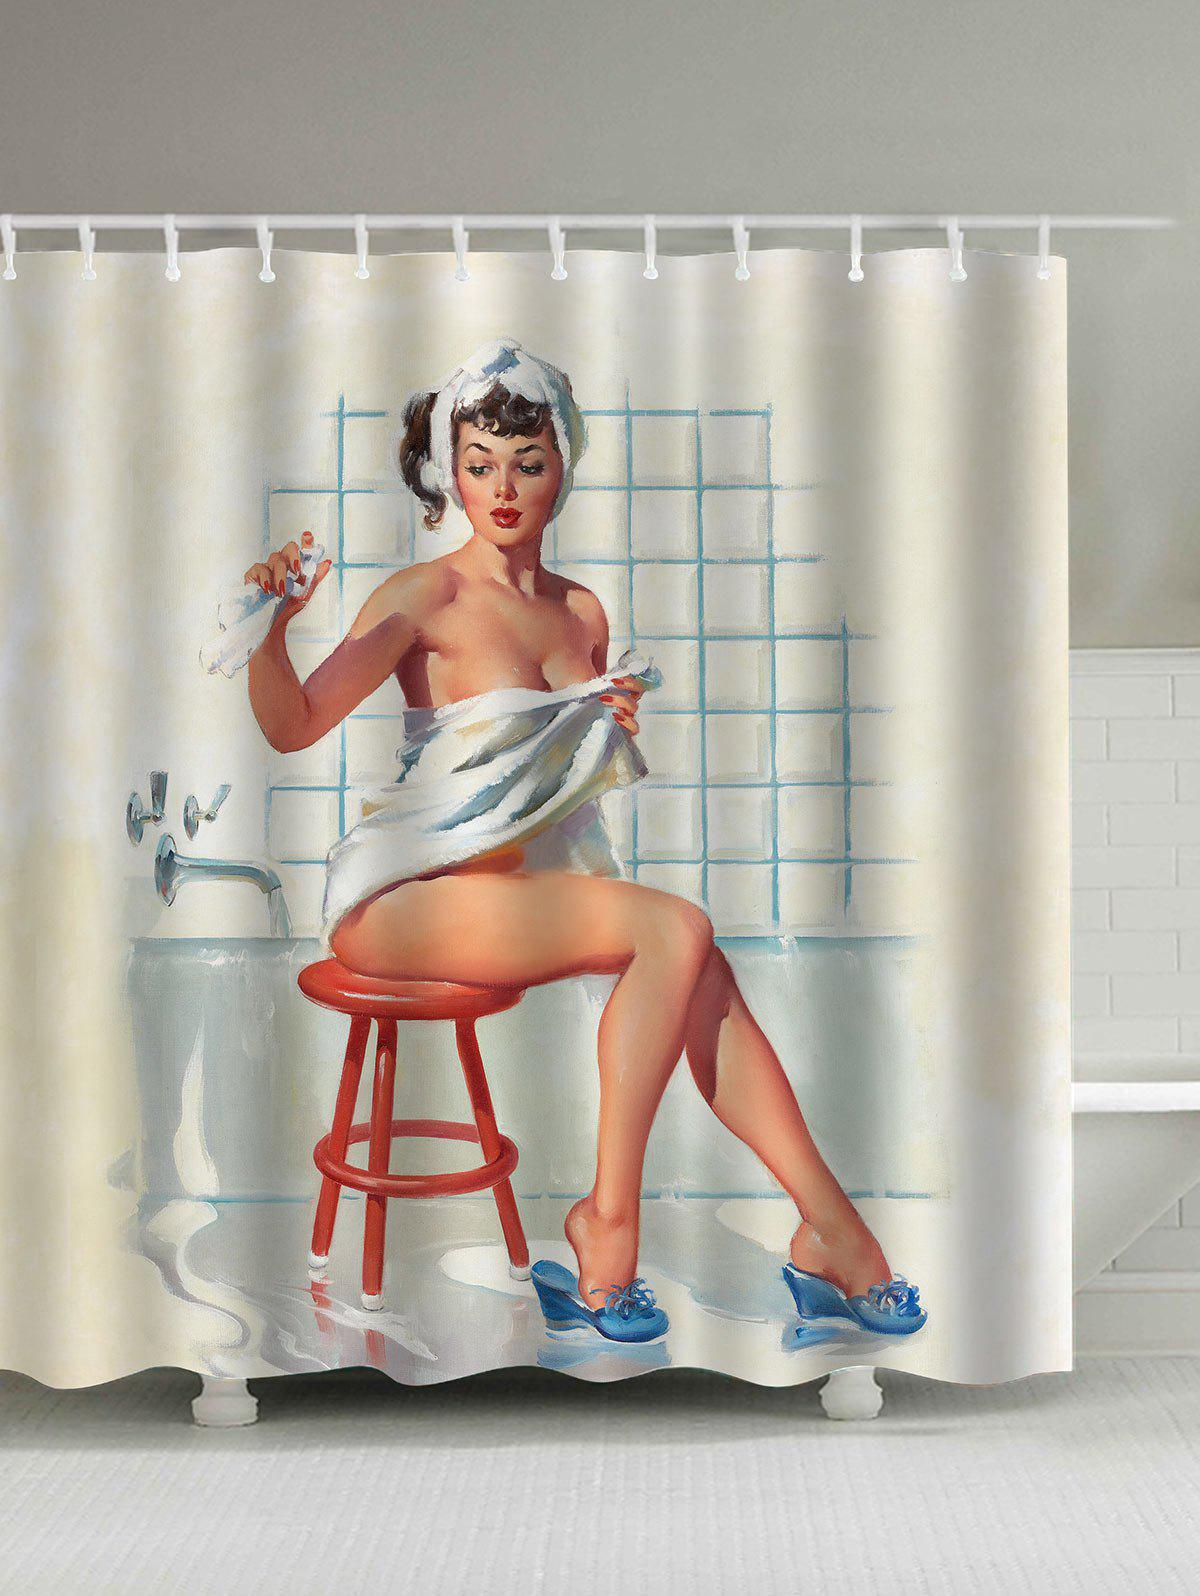 Waterproof Vintage Shower Girl Shower Curtain - COLORMIX 150*180CM